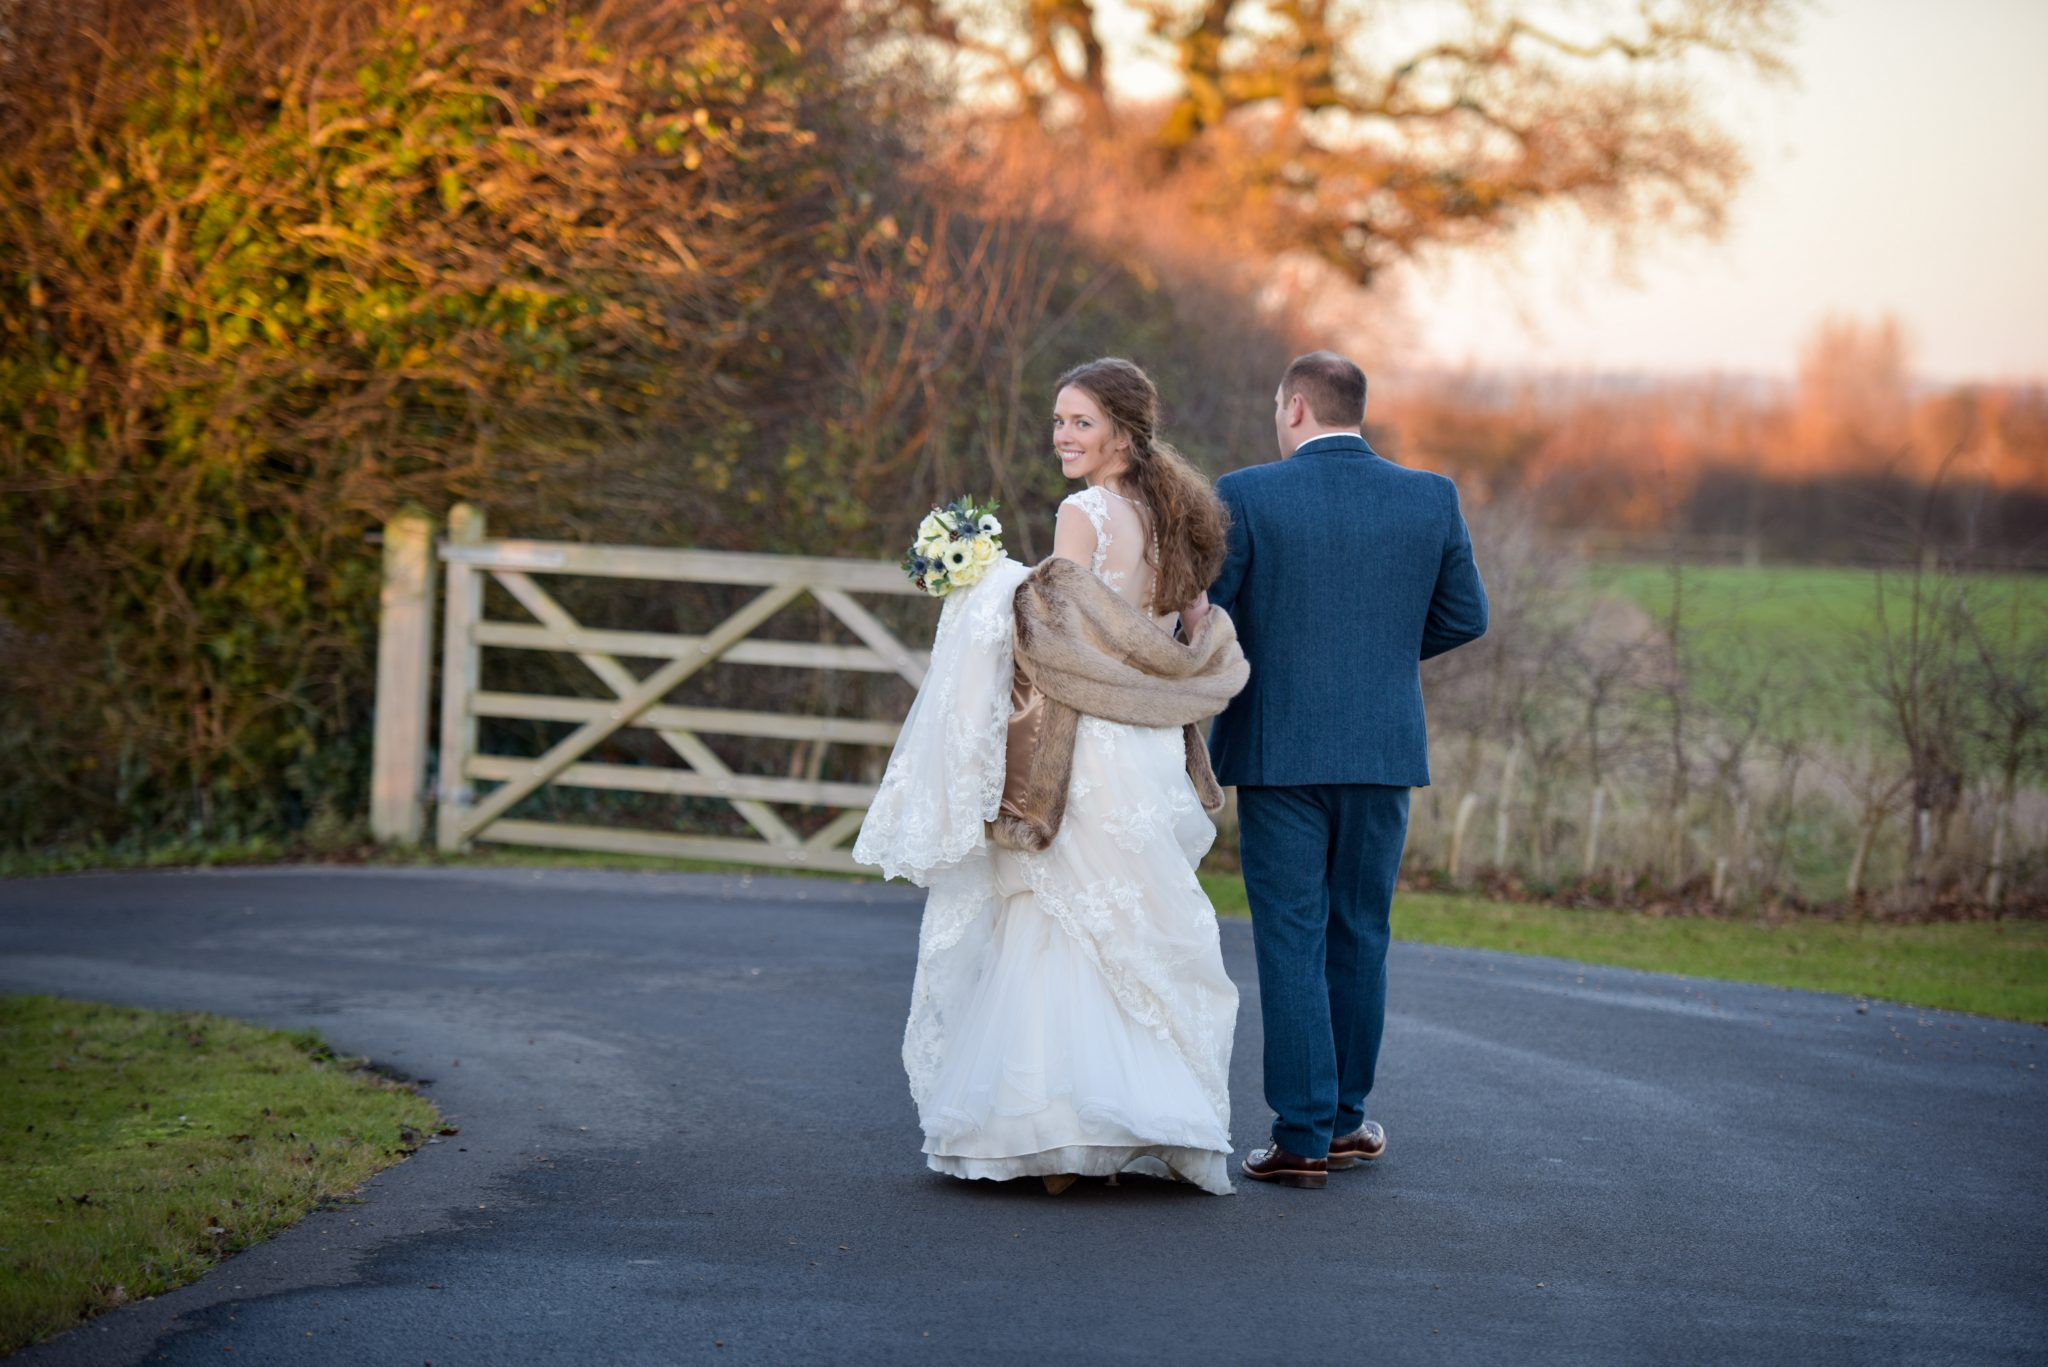 bride and groom walking away towards autumn sunset as bride turns to look at camera